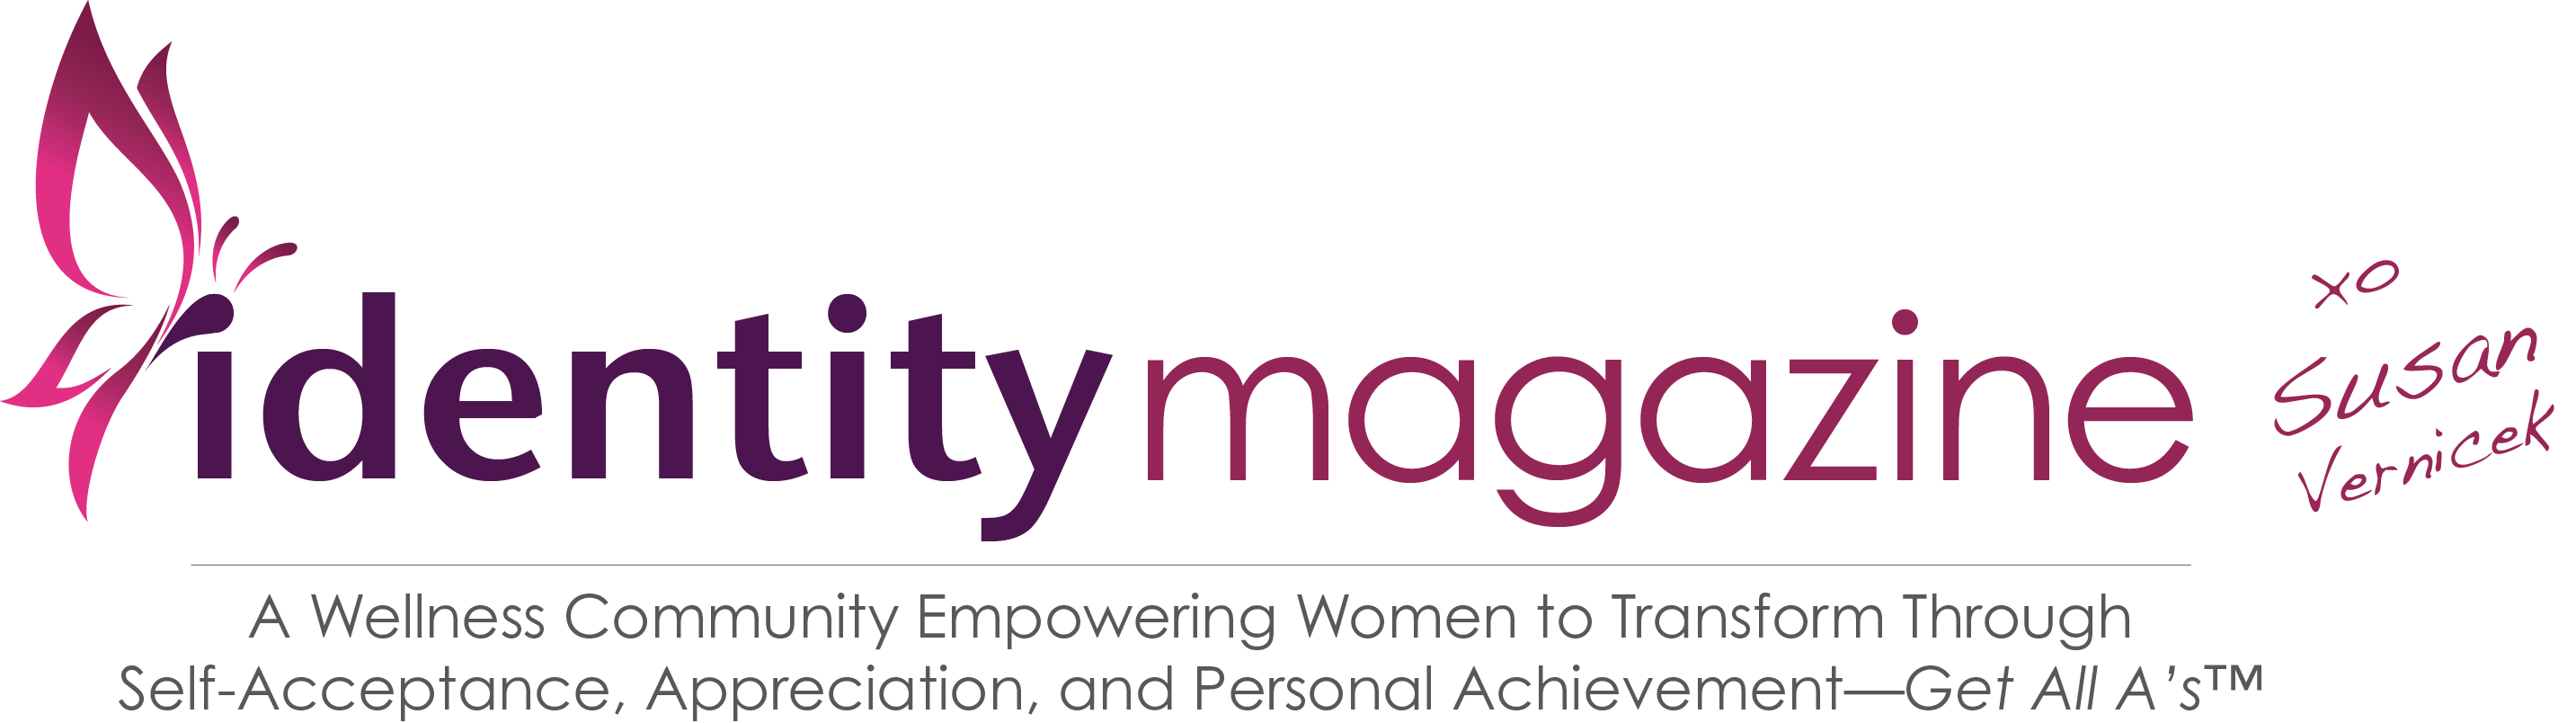 Identity Magazine for Women (under construction)